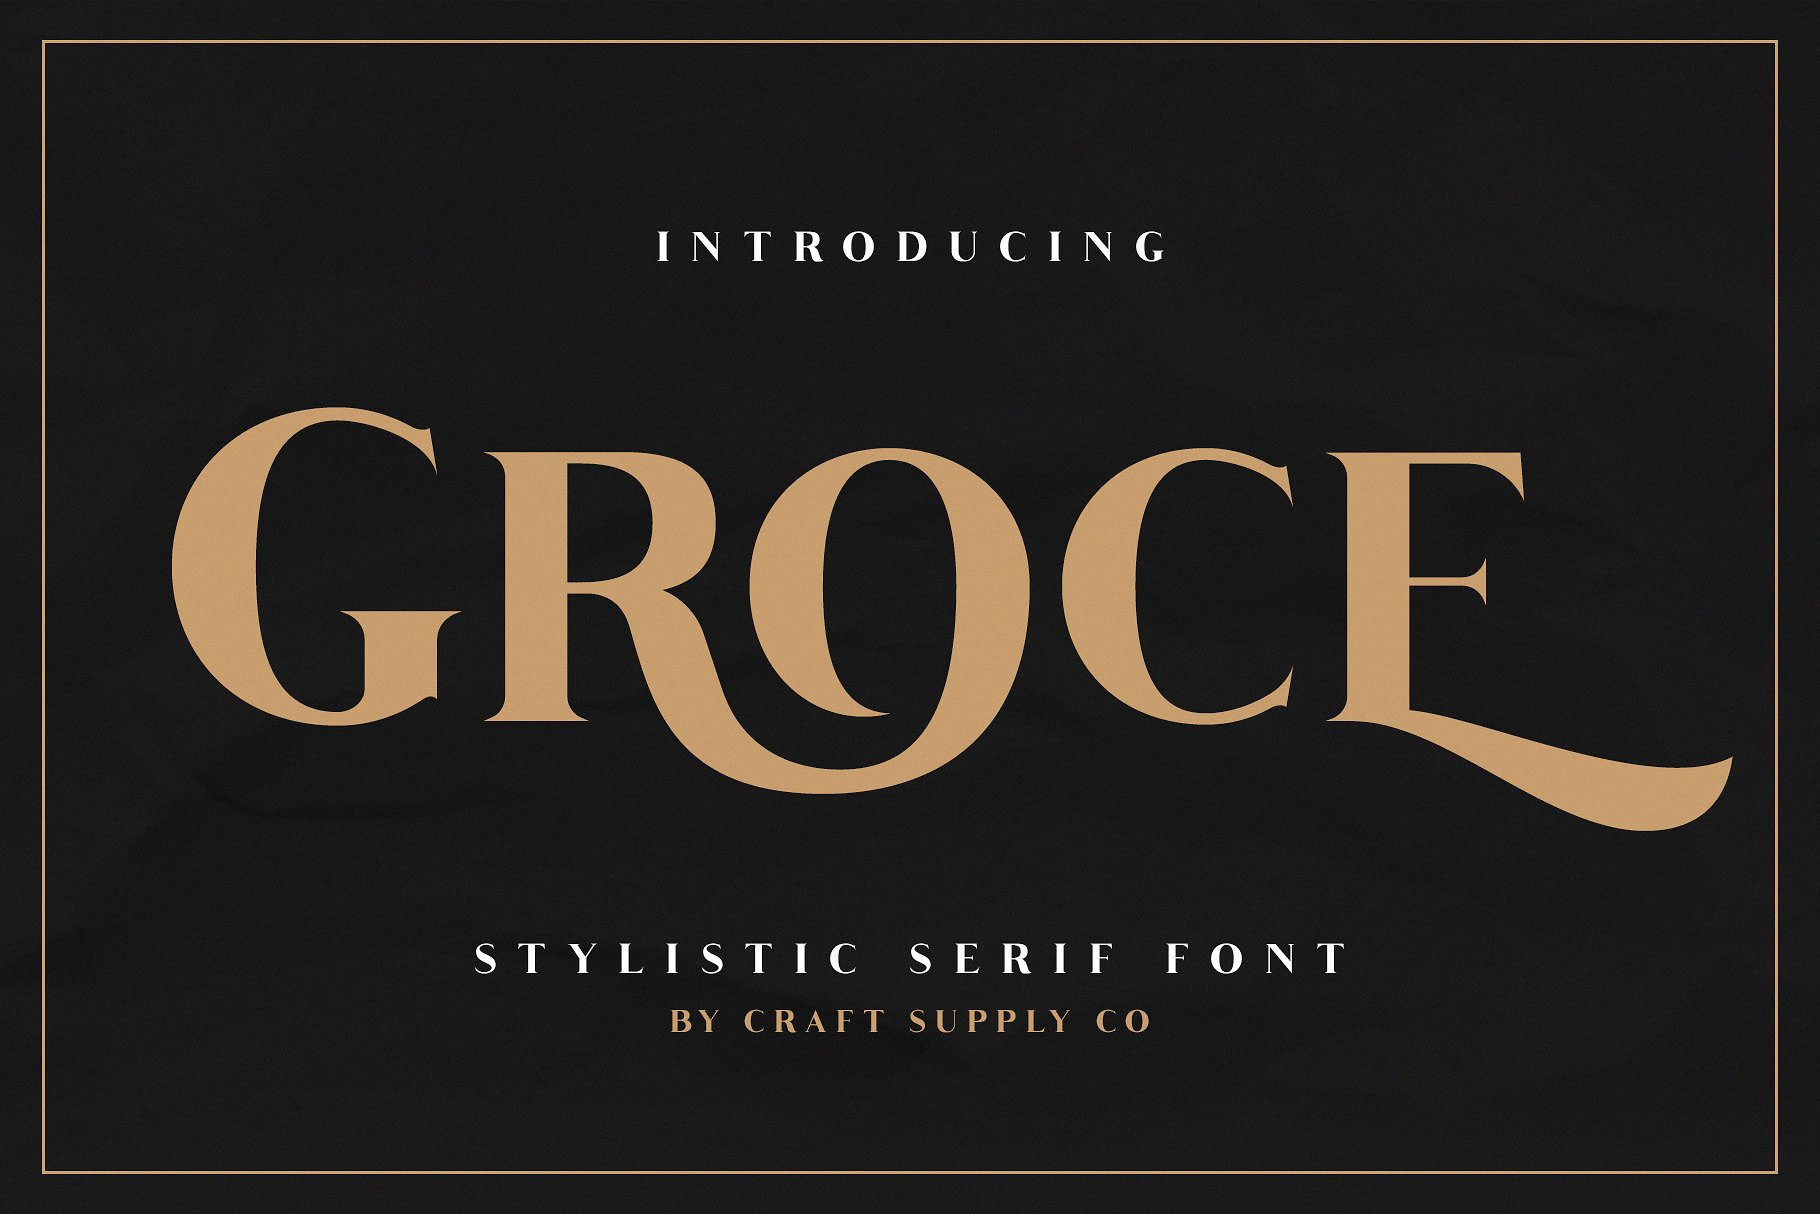 https://fontclarity.com/wp-content/uploads/2019/09/groce-stylistic-serif-font-download-0.jpg Free Download